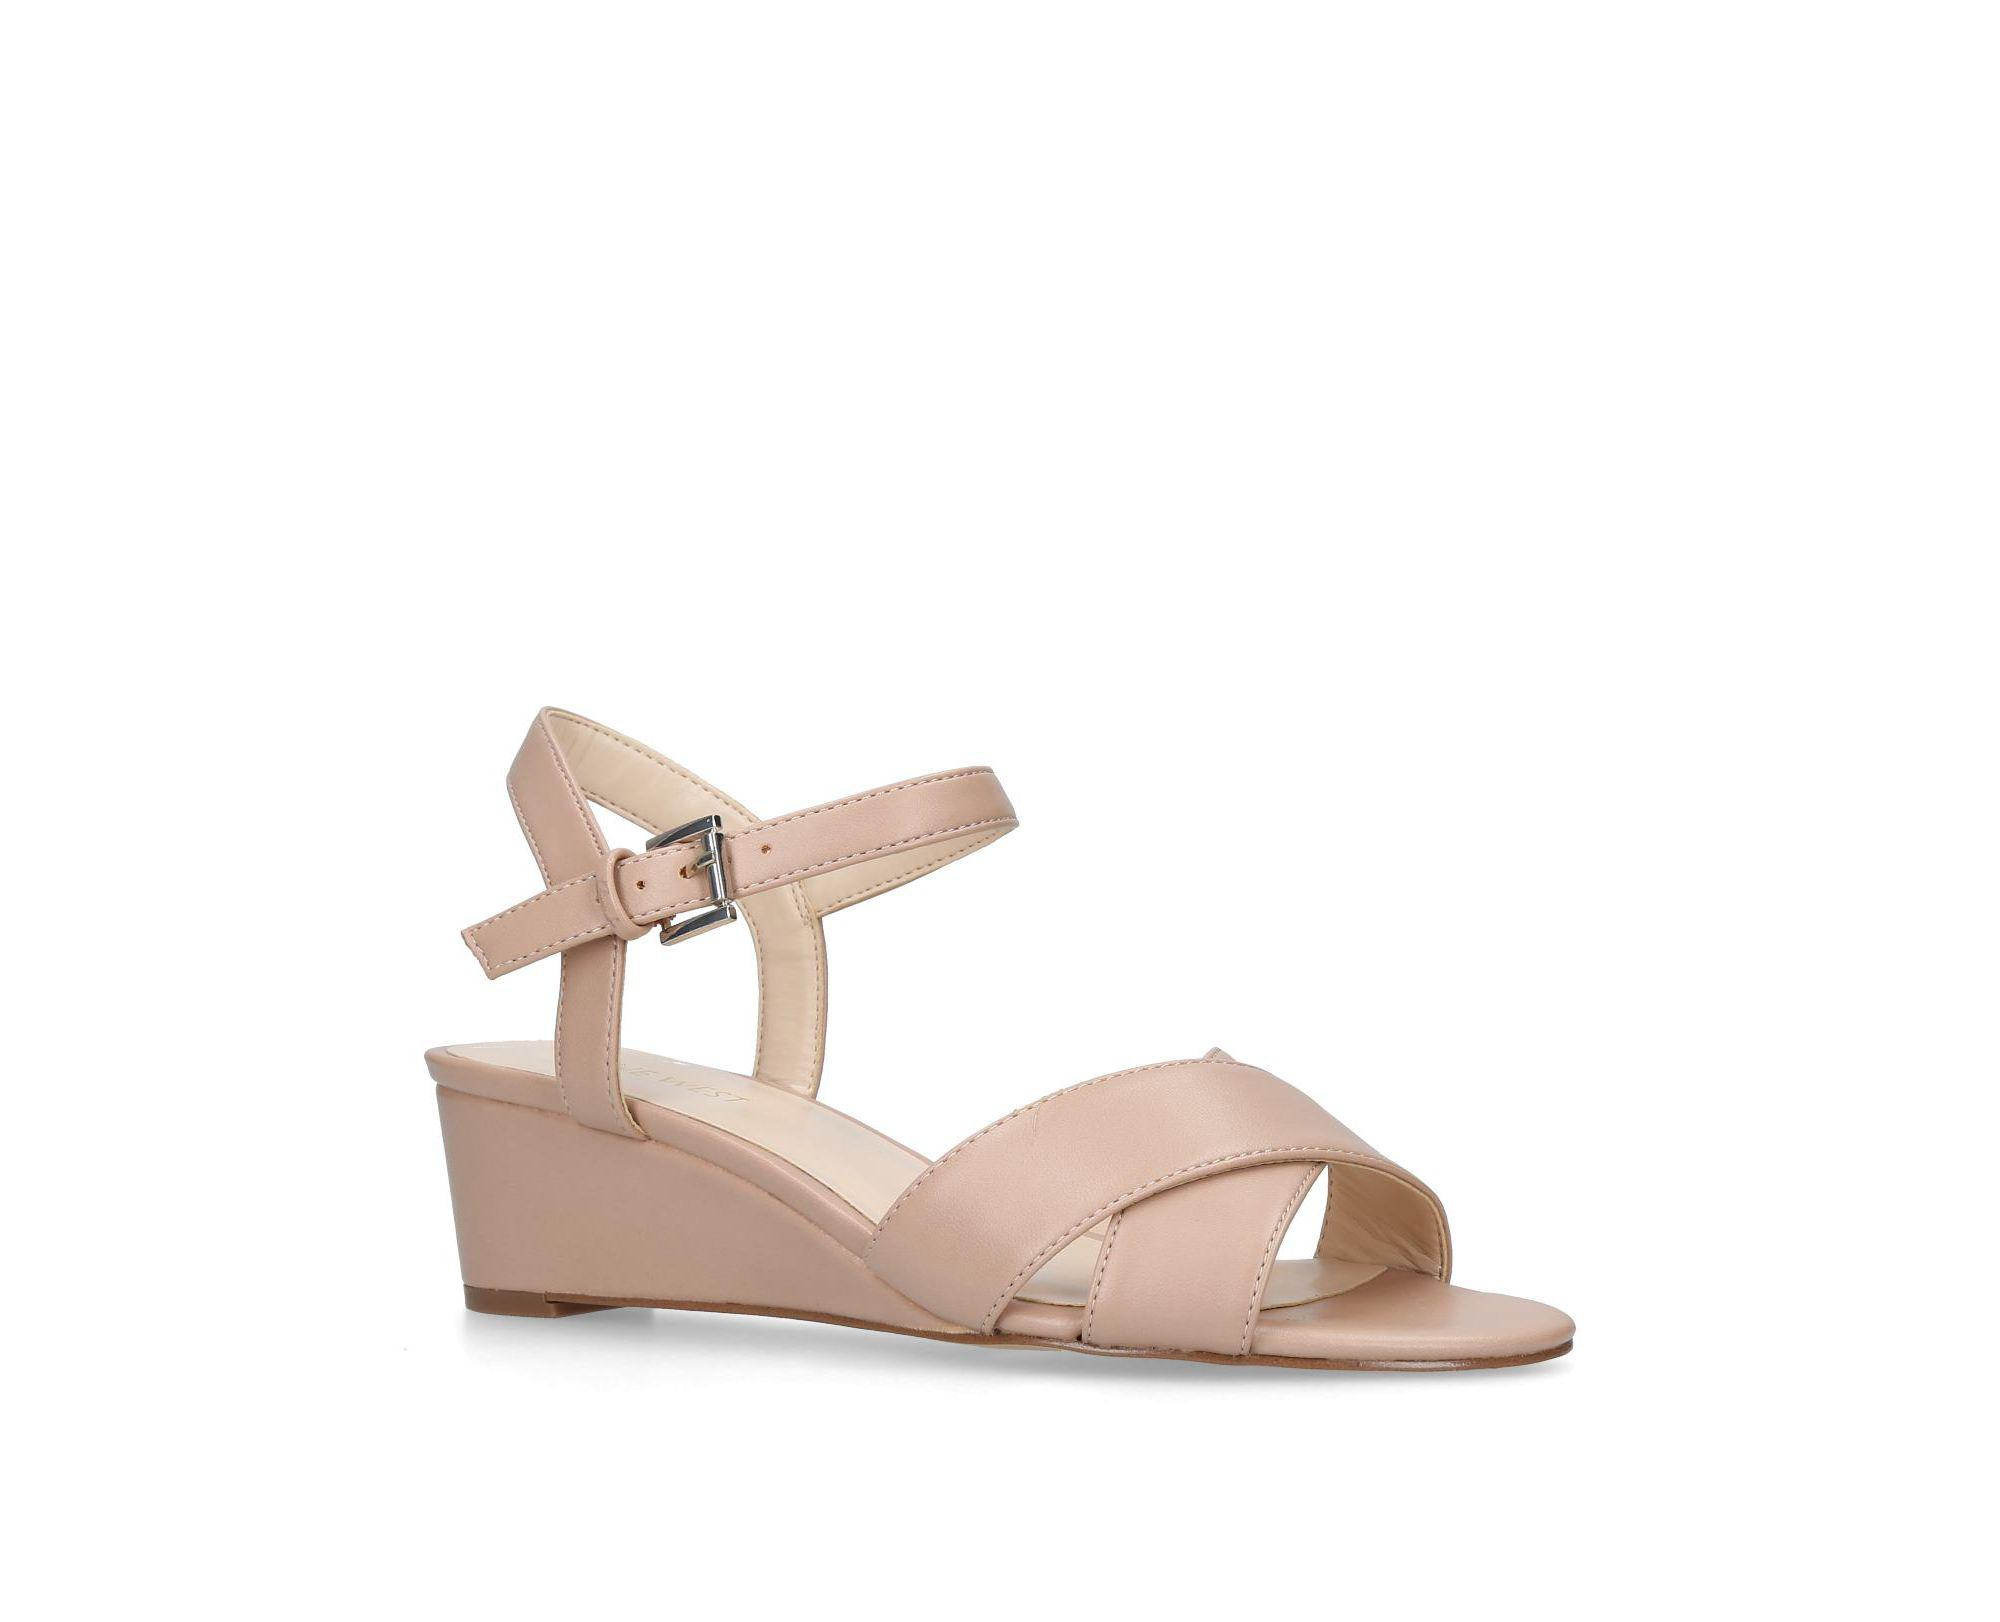 dddfc67e4464 Nine West Nude  lucyme  Low Heel Wedge Sandals in Natural - Lyst